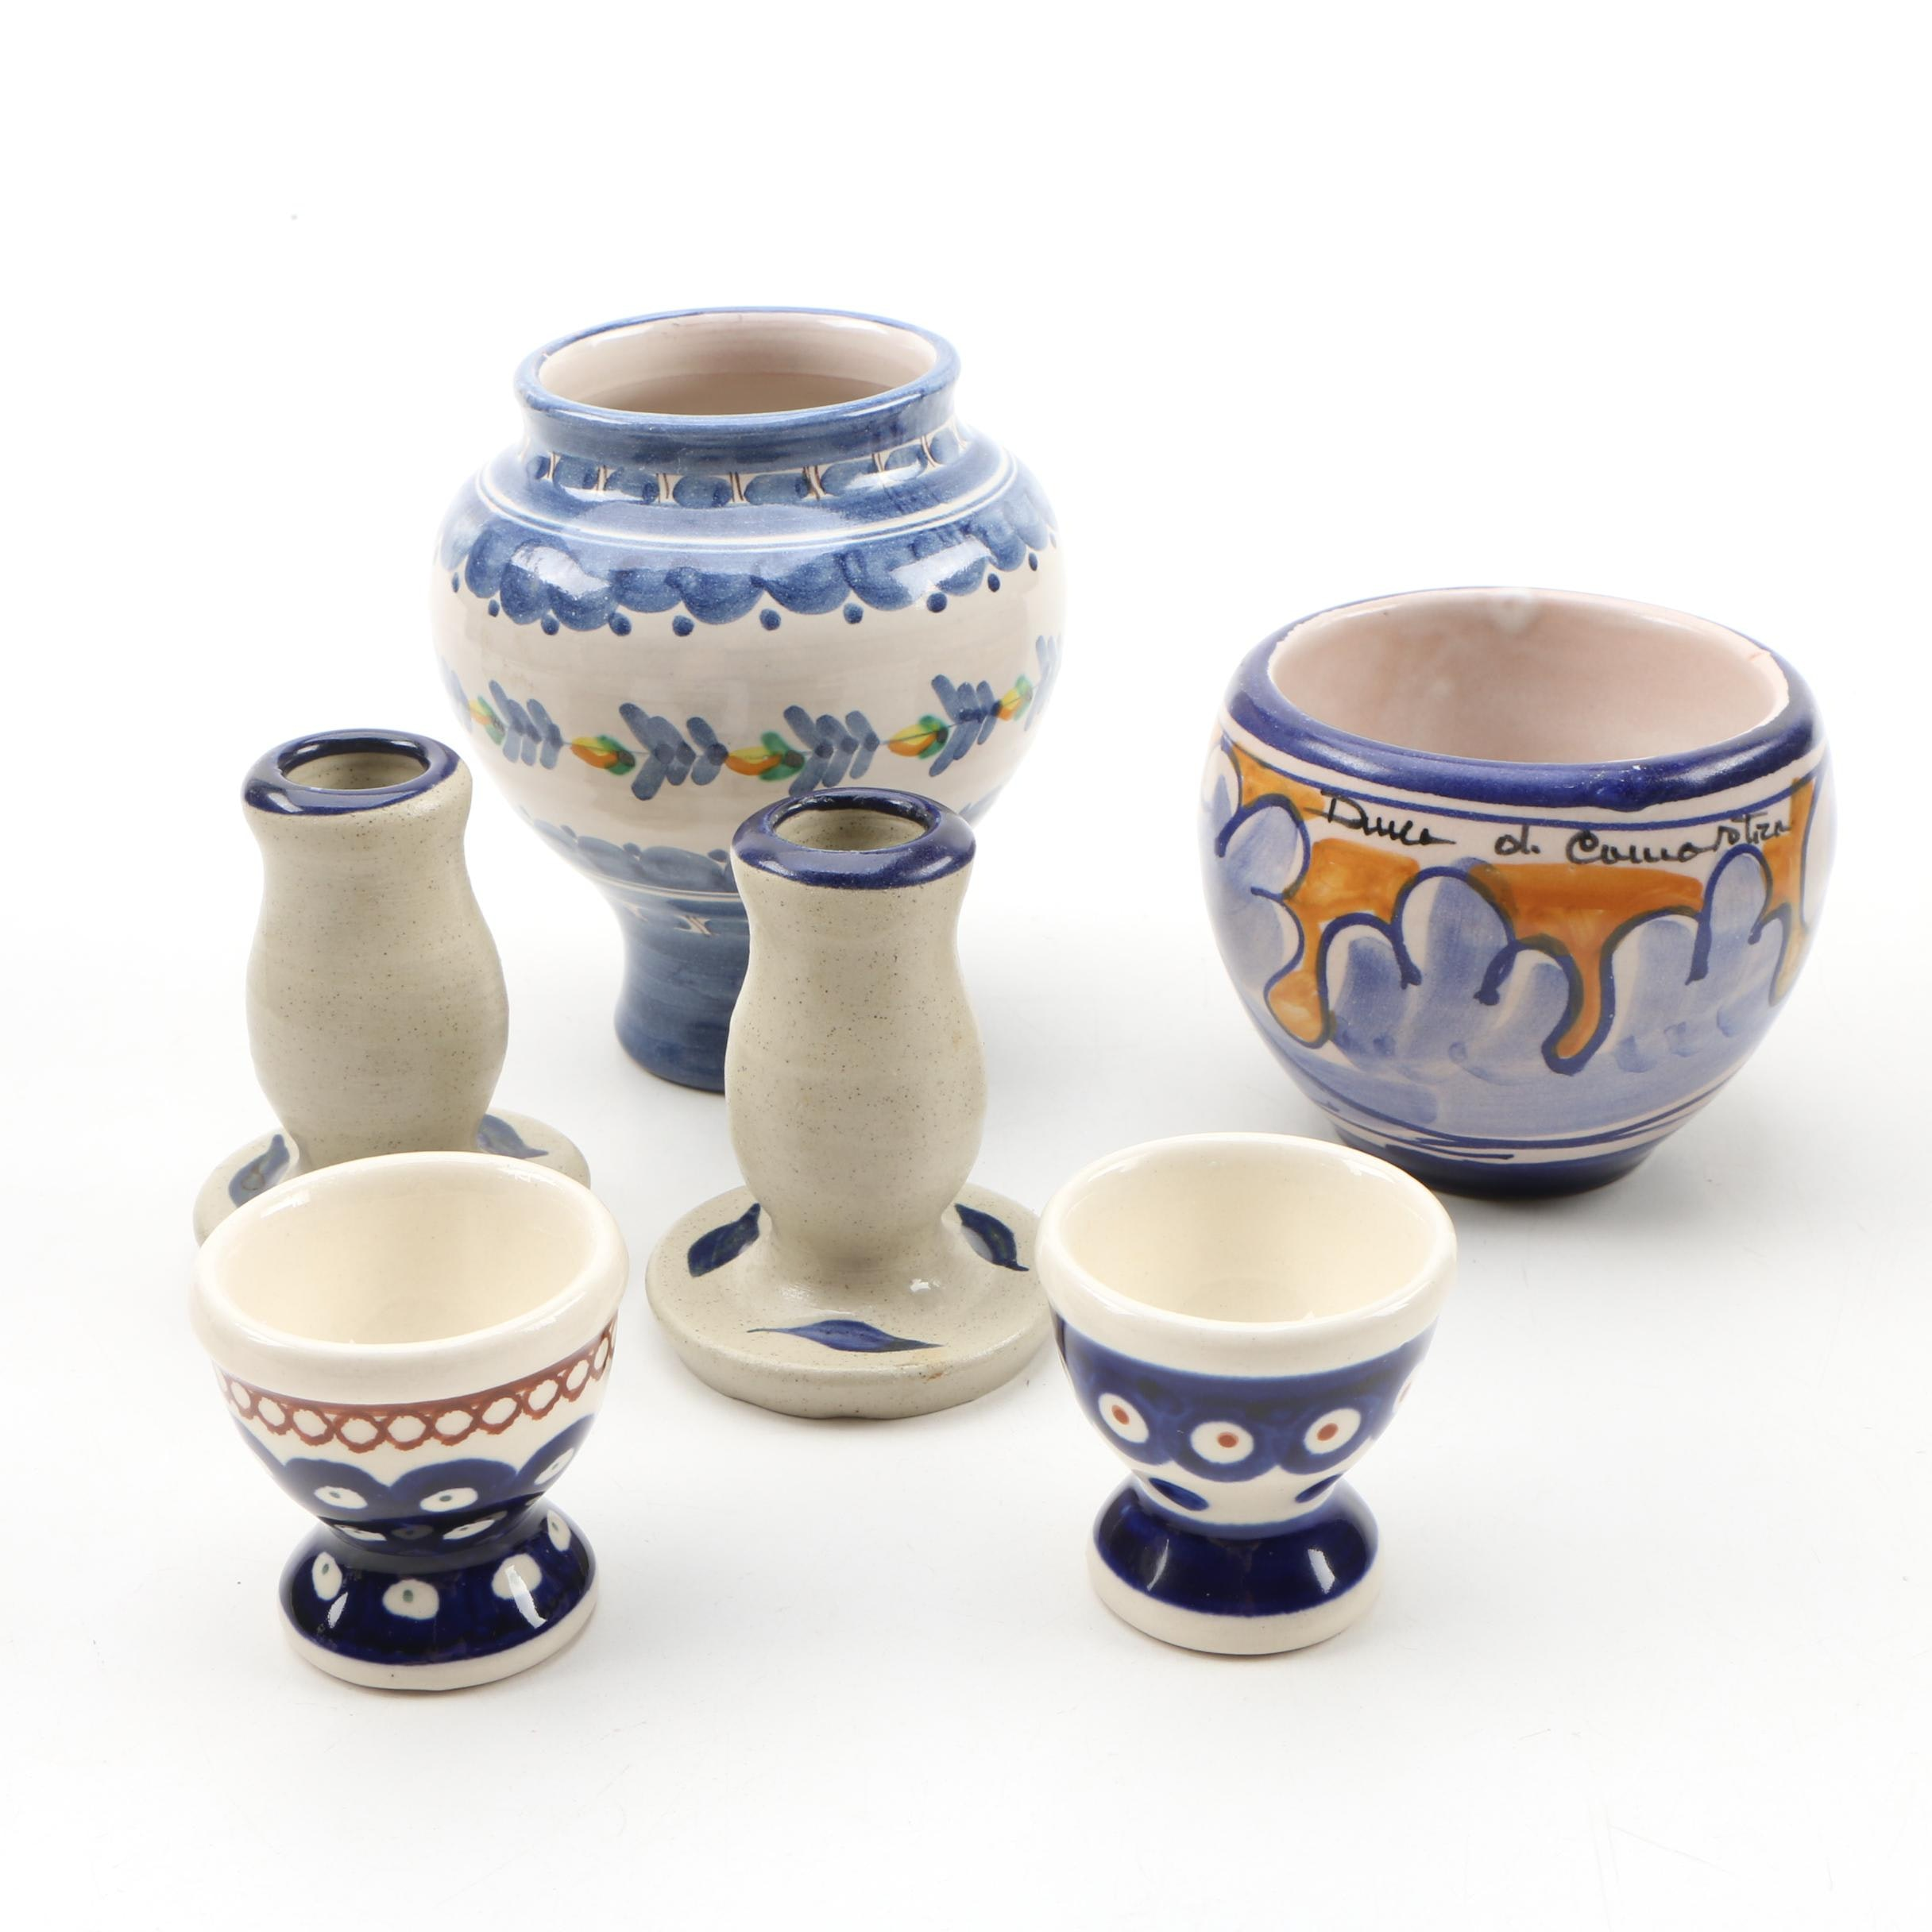 Williamsburg Pottery Candlesticks and Other Souvenir Pieces